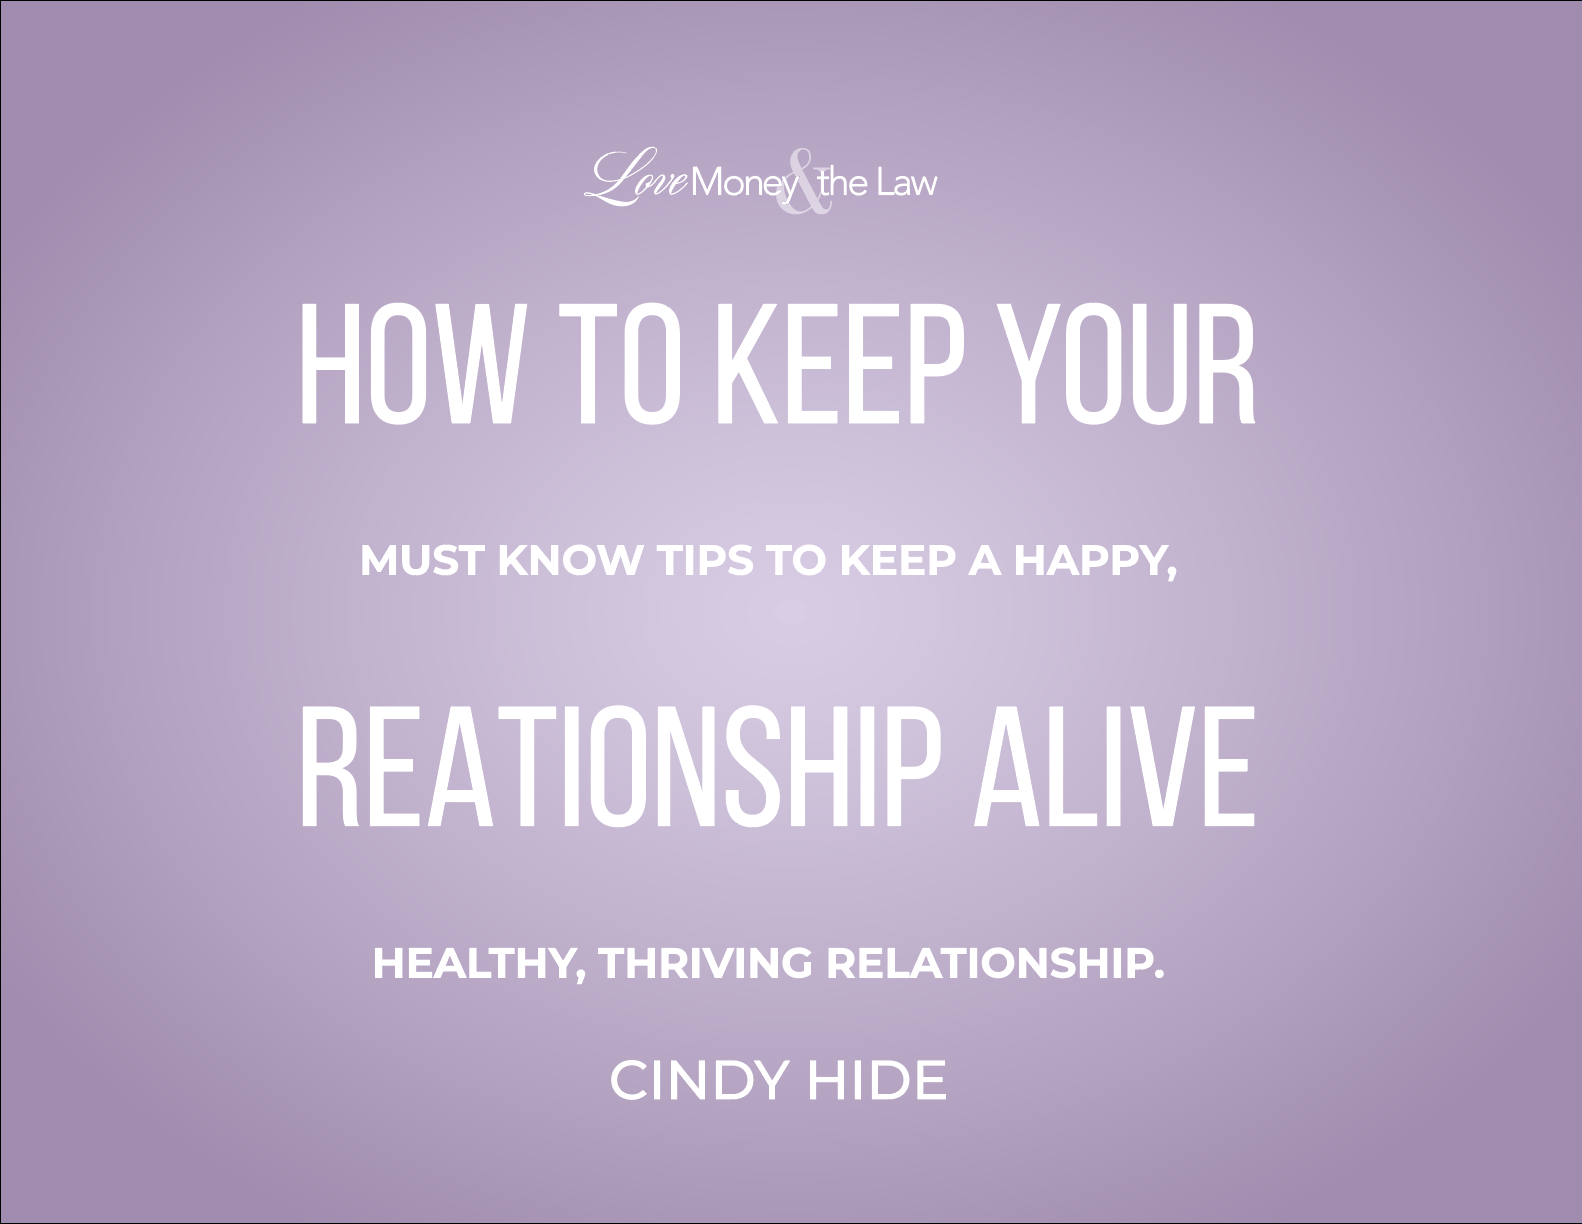 Seminar For How to Keep Your Relationship Alive: Must Know Tips to Keep a Happy, Healthy, Thriving Relationship.